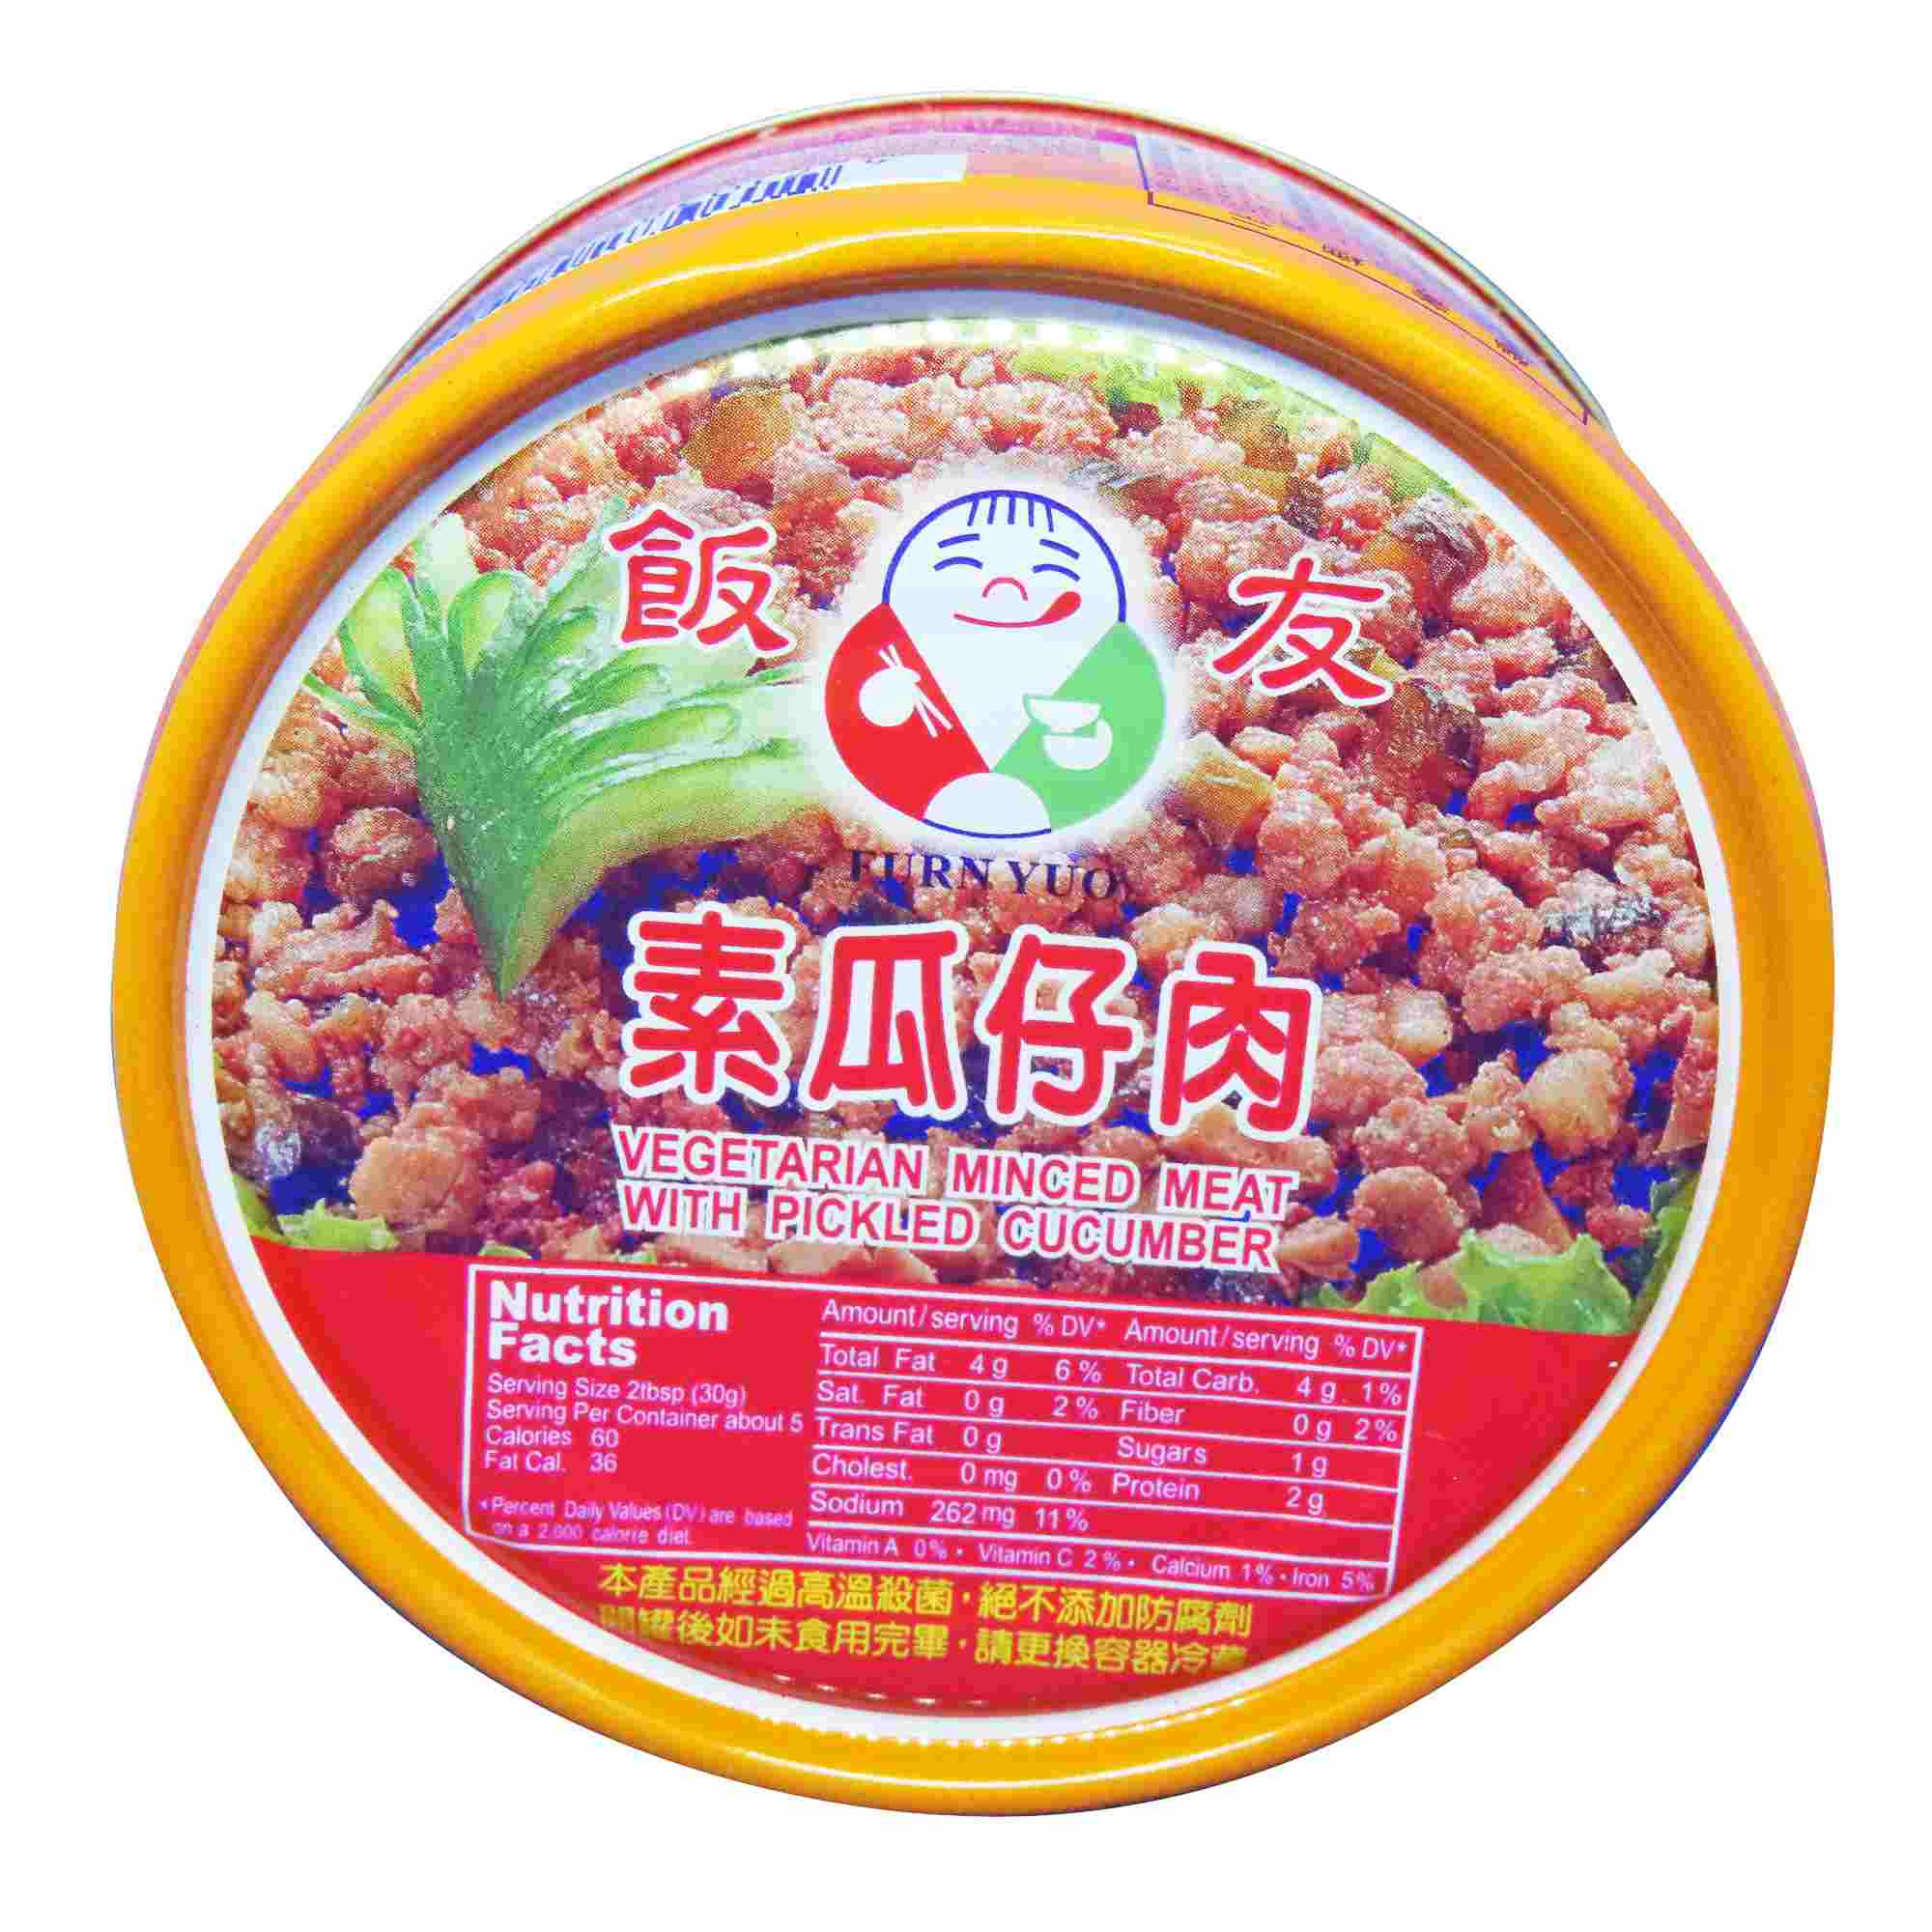 Image Vege Minced Meat 饭友 - 瓜仔肉 150grams